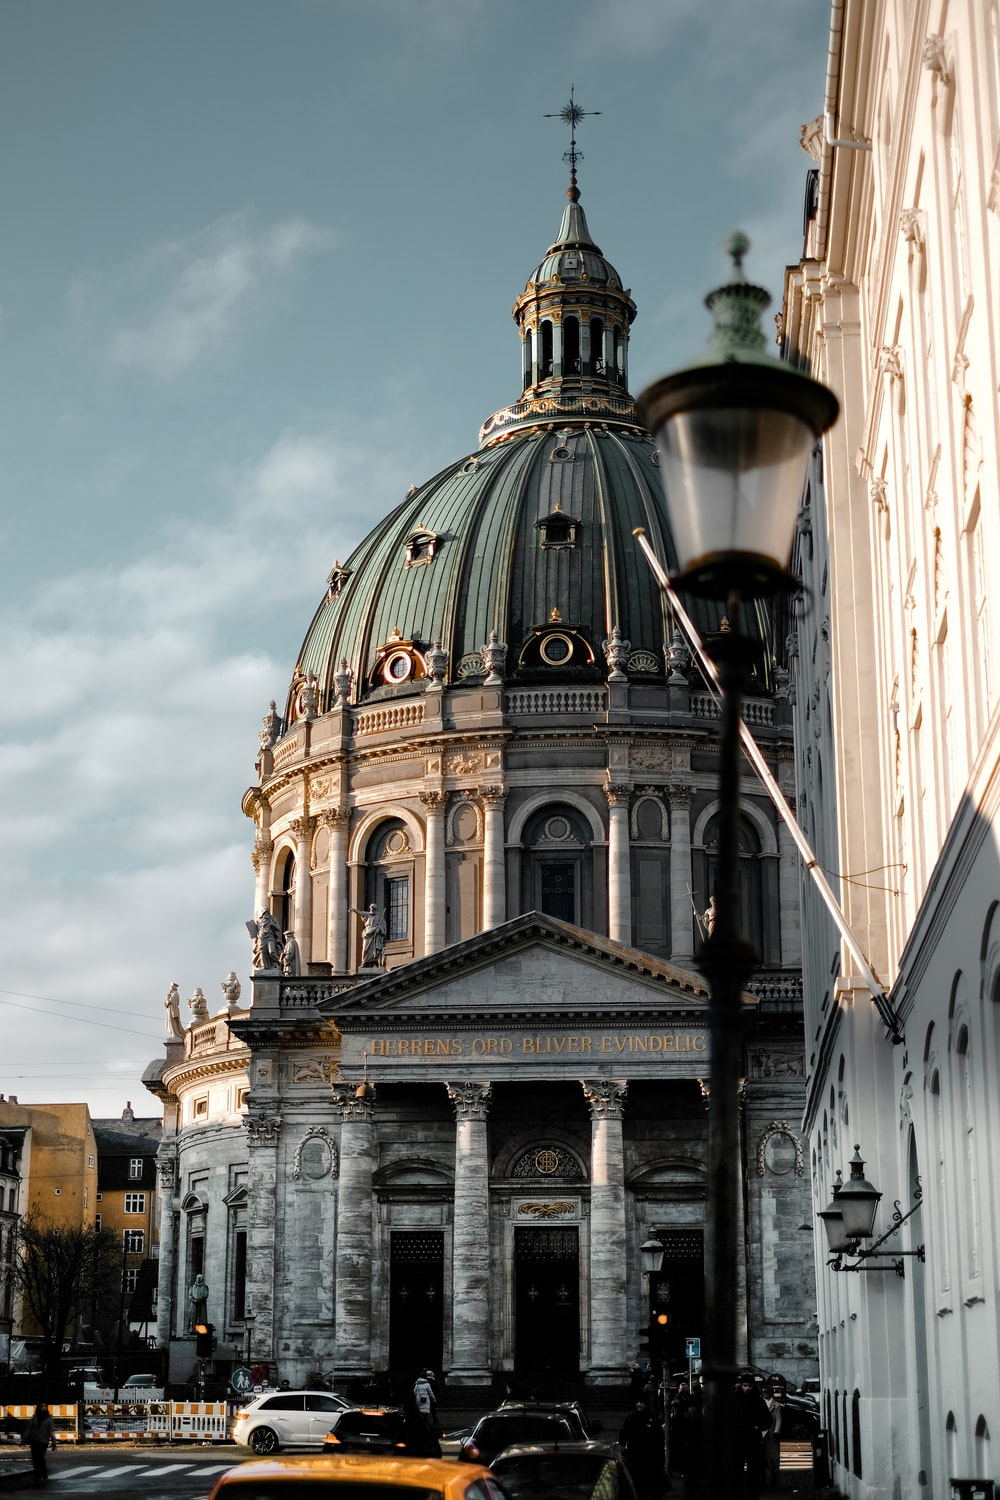 architectural photography Frederik's Church